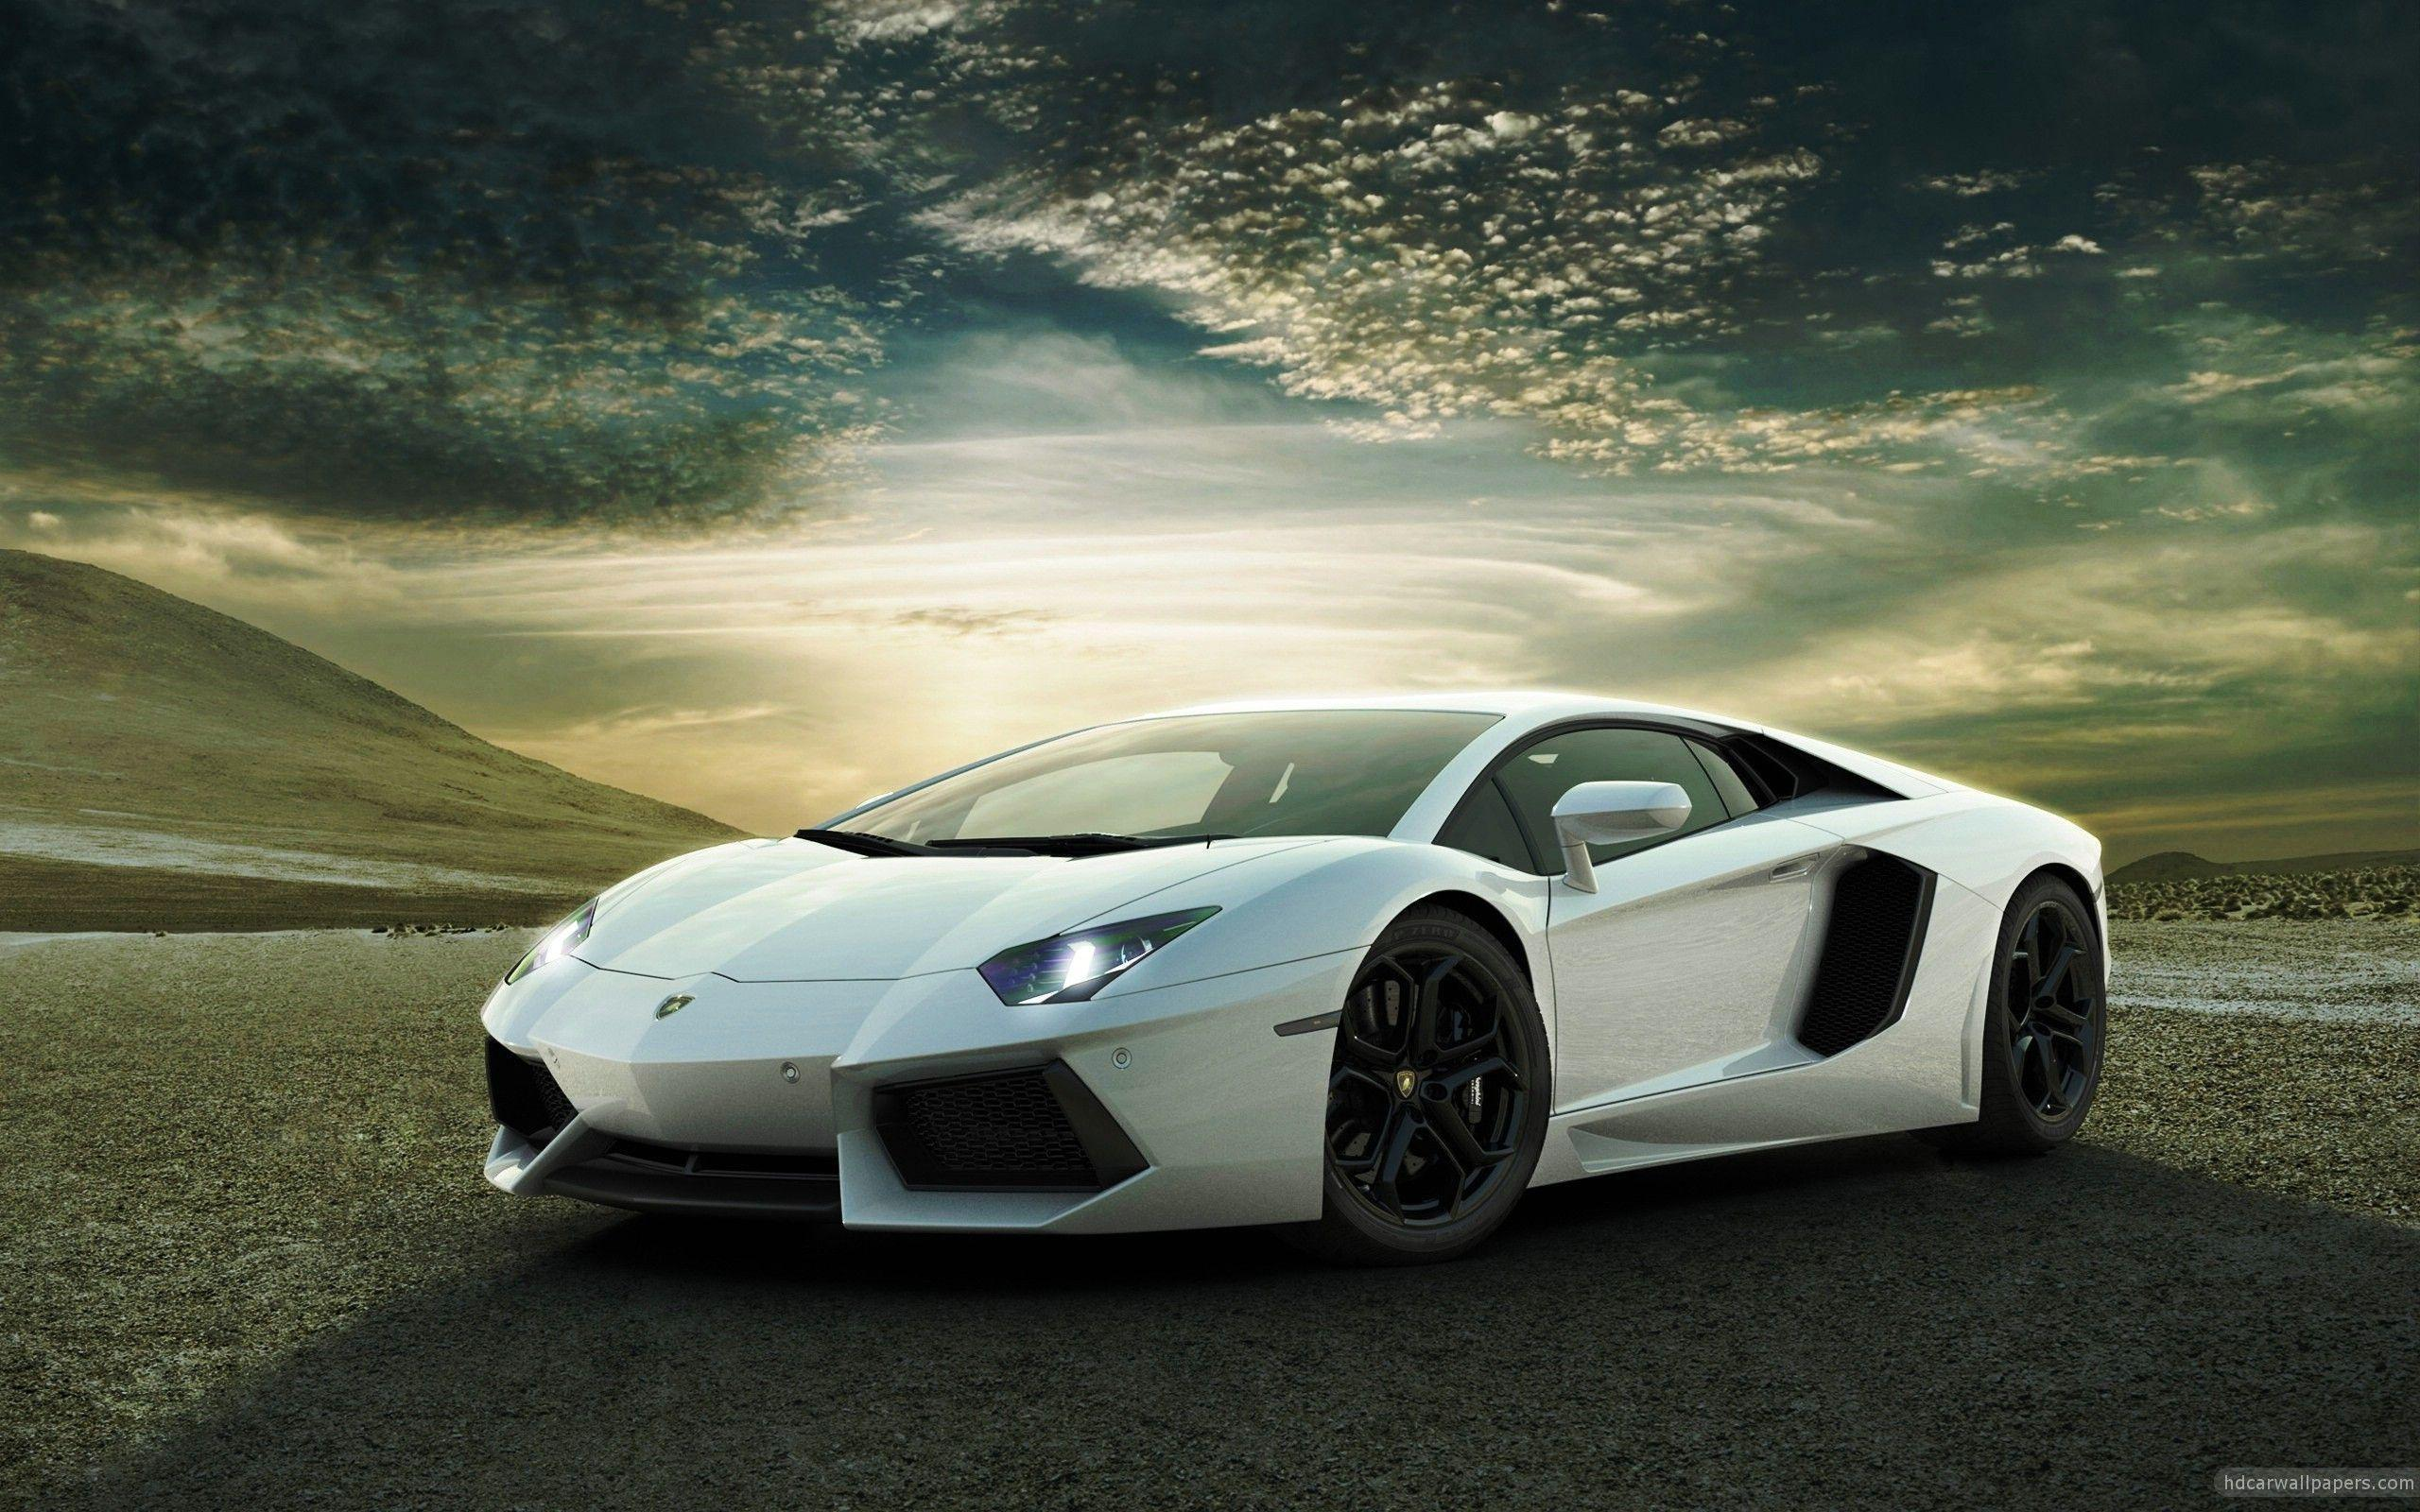 Lamborghini Aventador High Resolution Wallpaper